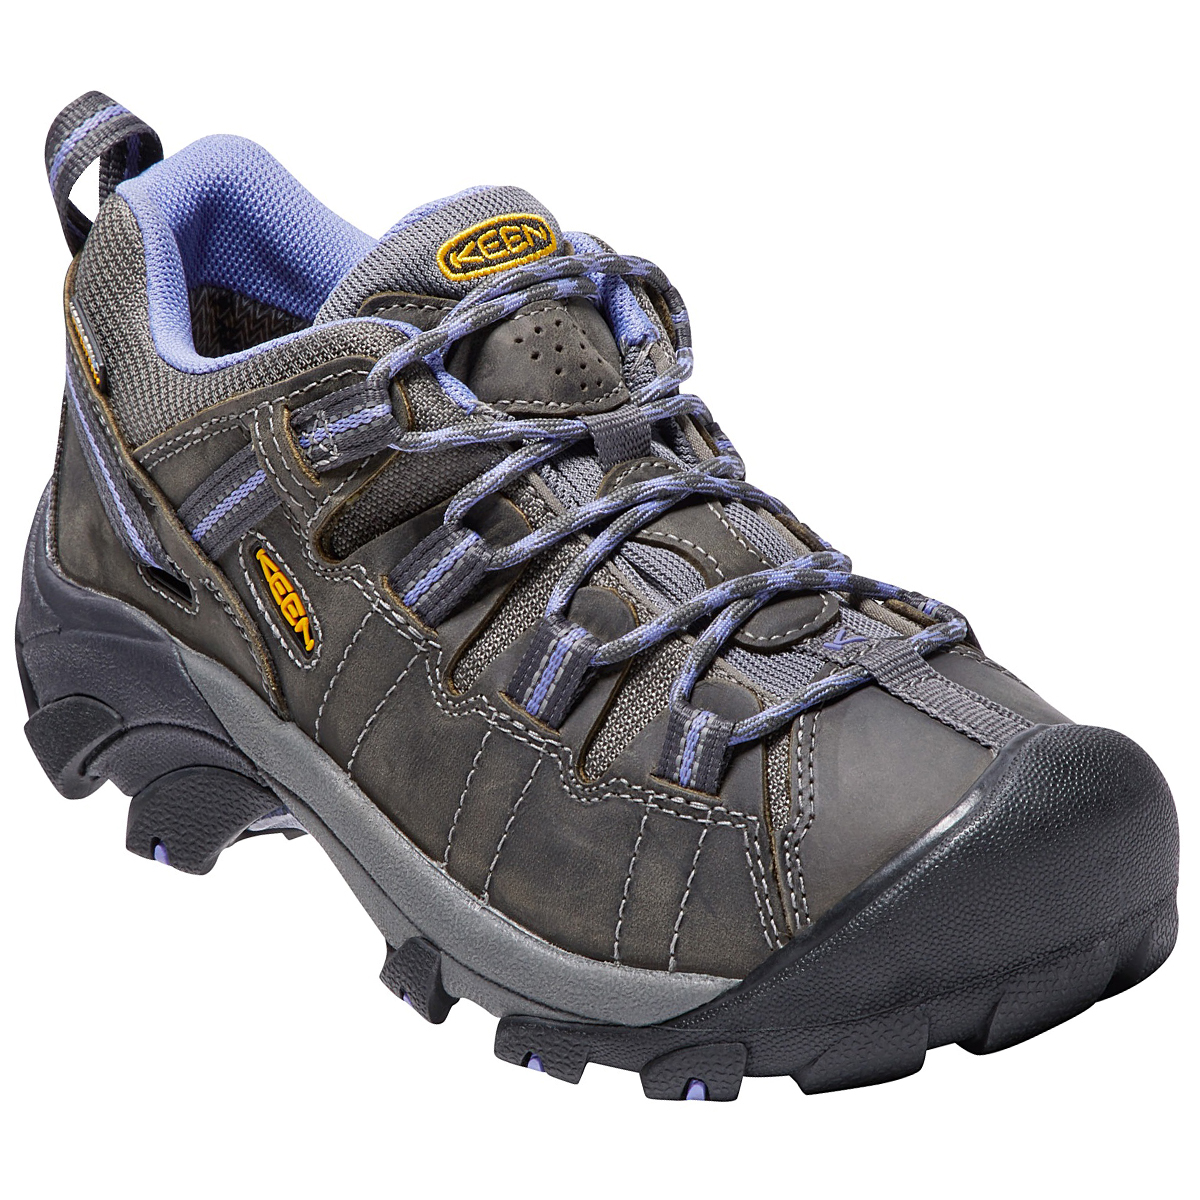 Keen Women's Targhee Ii Waterproof Low Hiking Shoes - Black, 9